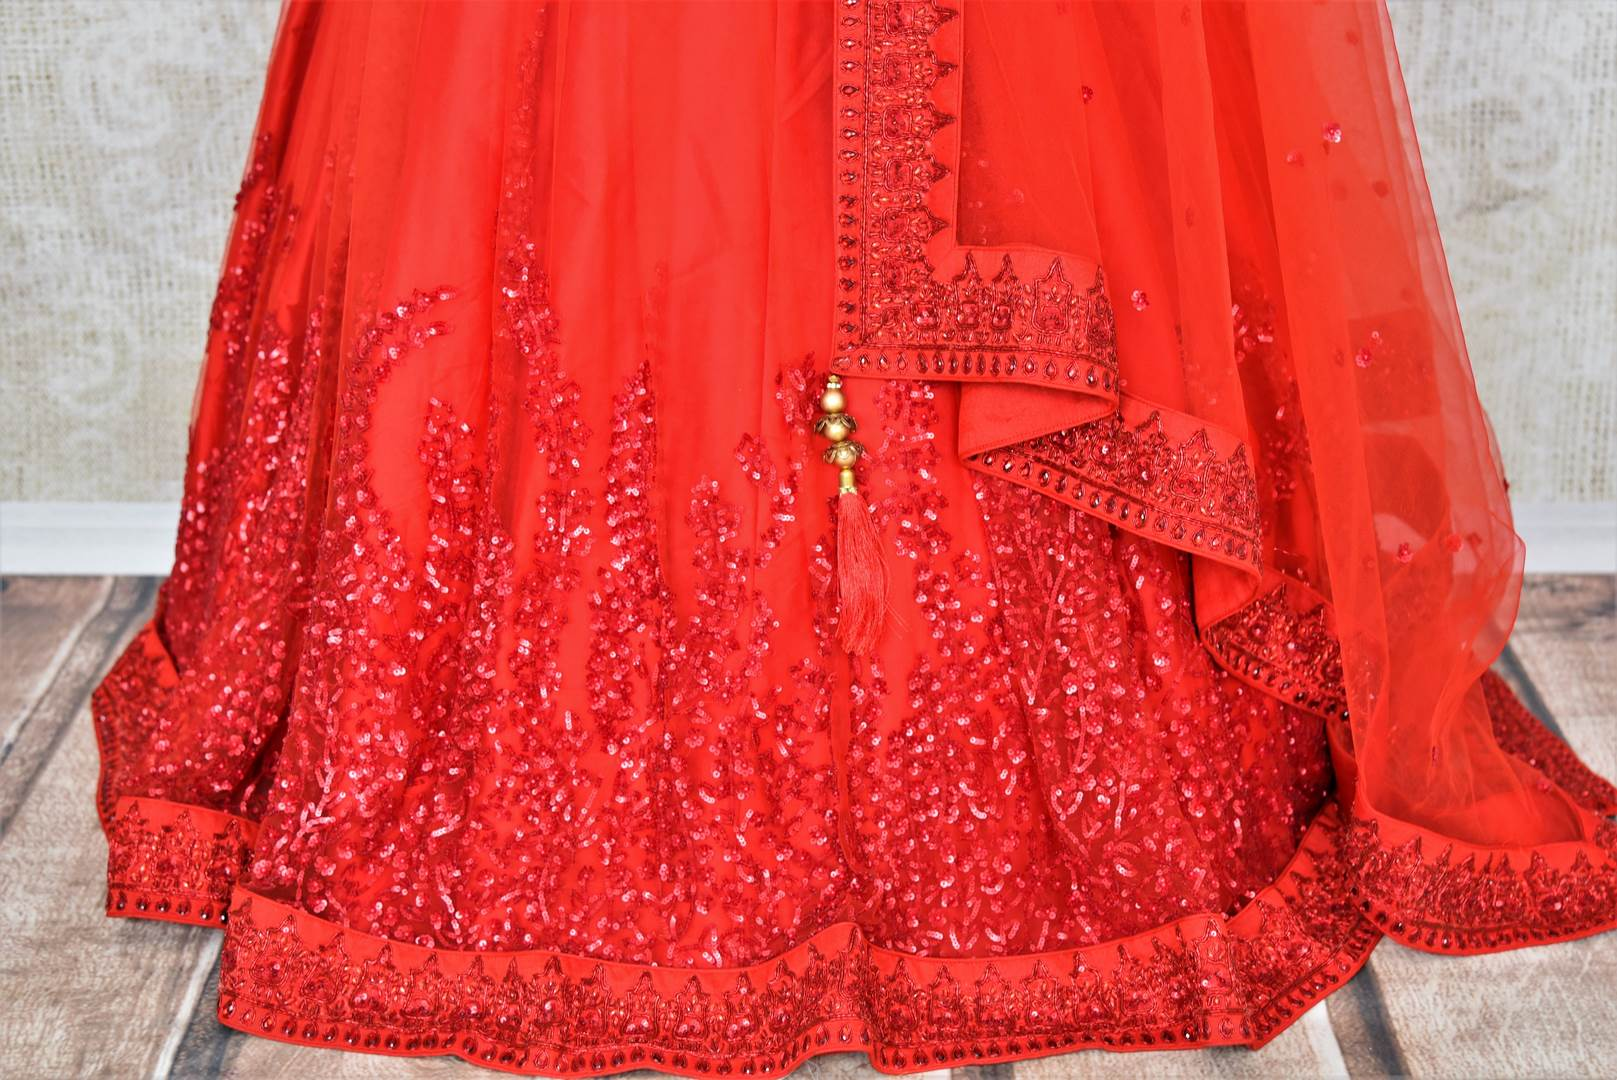 Buy red ticki work designer net lehenga with dupatta online in USA. Add brilliance to your Indian wedding look with an exquisite range of designer wedding lehengas available at Pure Elegance exclusive clothing store in USA or shop online.-skirt